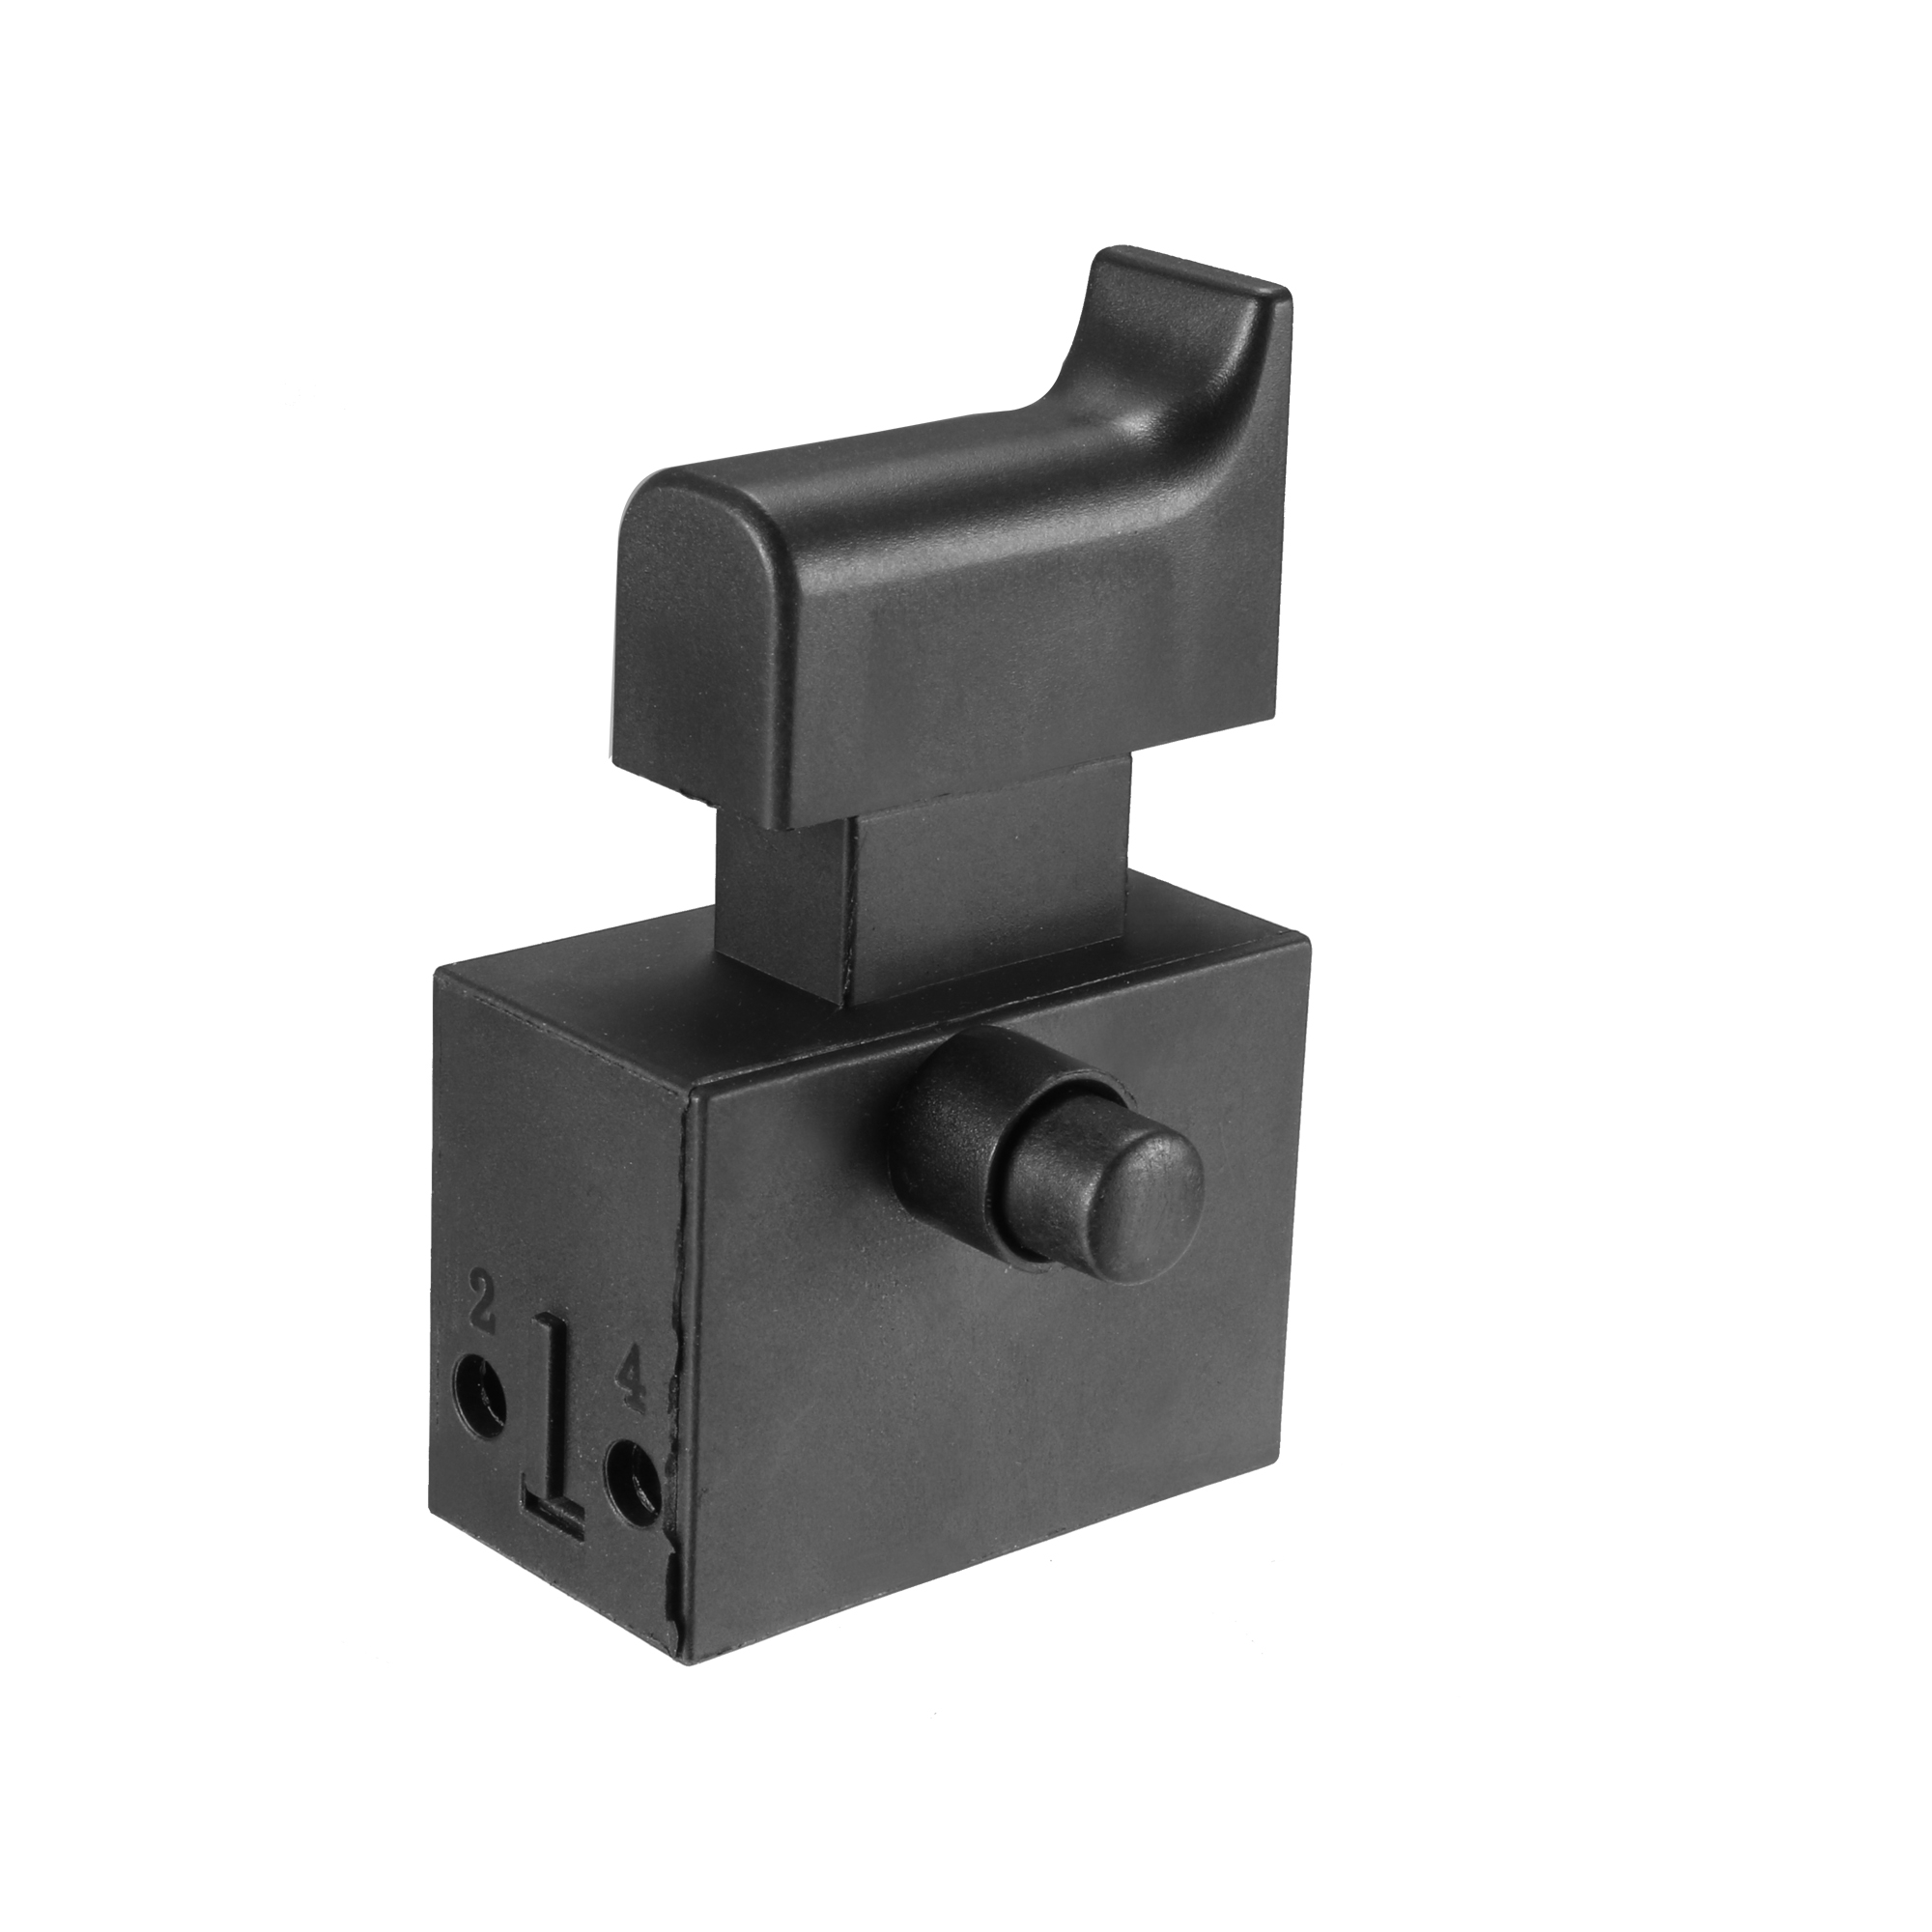 Electric Portable Drill Hammer Trigger Switch for 5A AC250V 6A Tool Power Speed Control FA2-6/2B - image 5 de 5